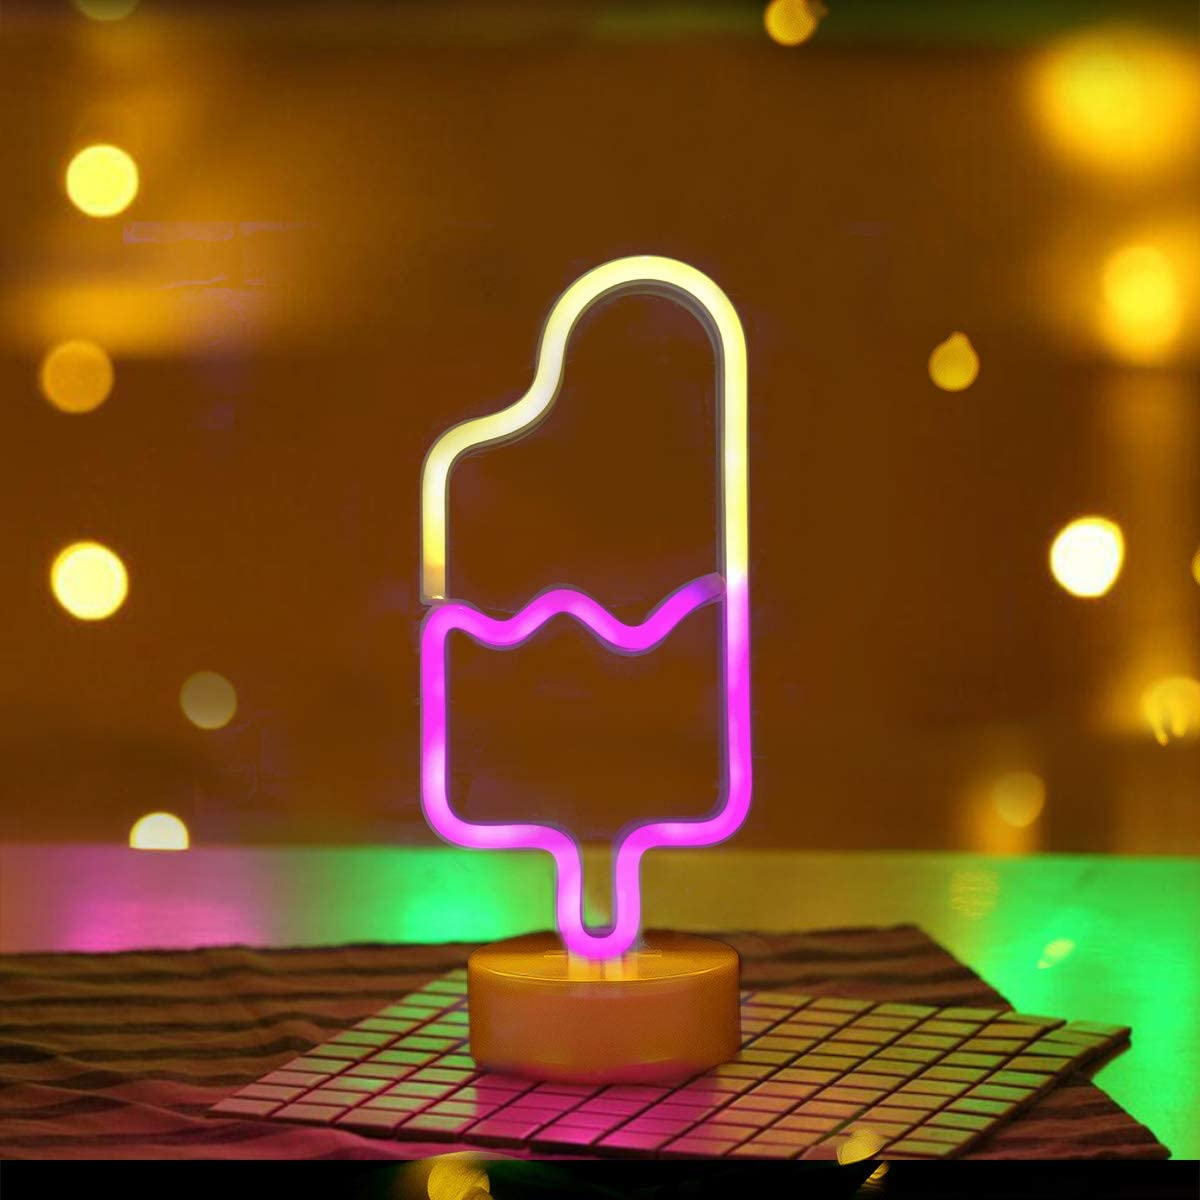 Battife Neon Signs Popsicle LED Light with Holder Base USB or Battery Operated Table Night Lamp for Bedroom,Home Party Decorations Gifts